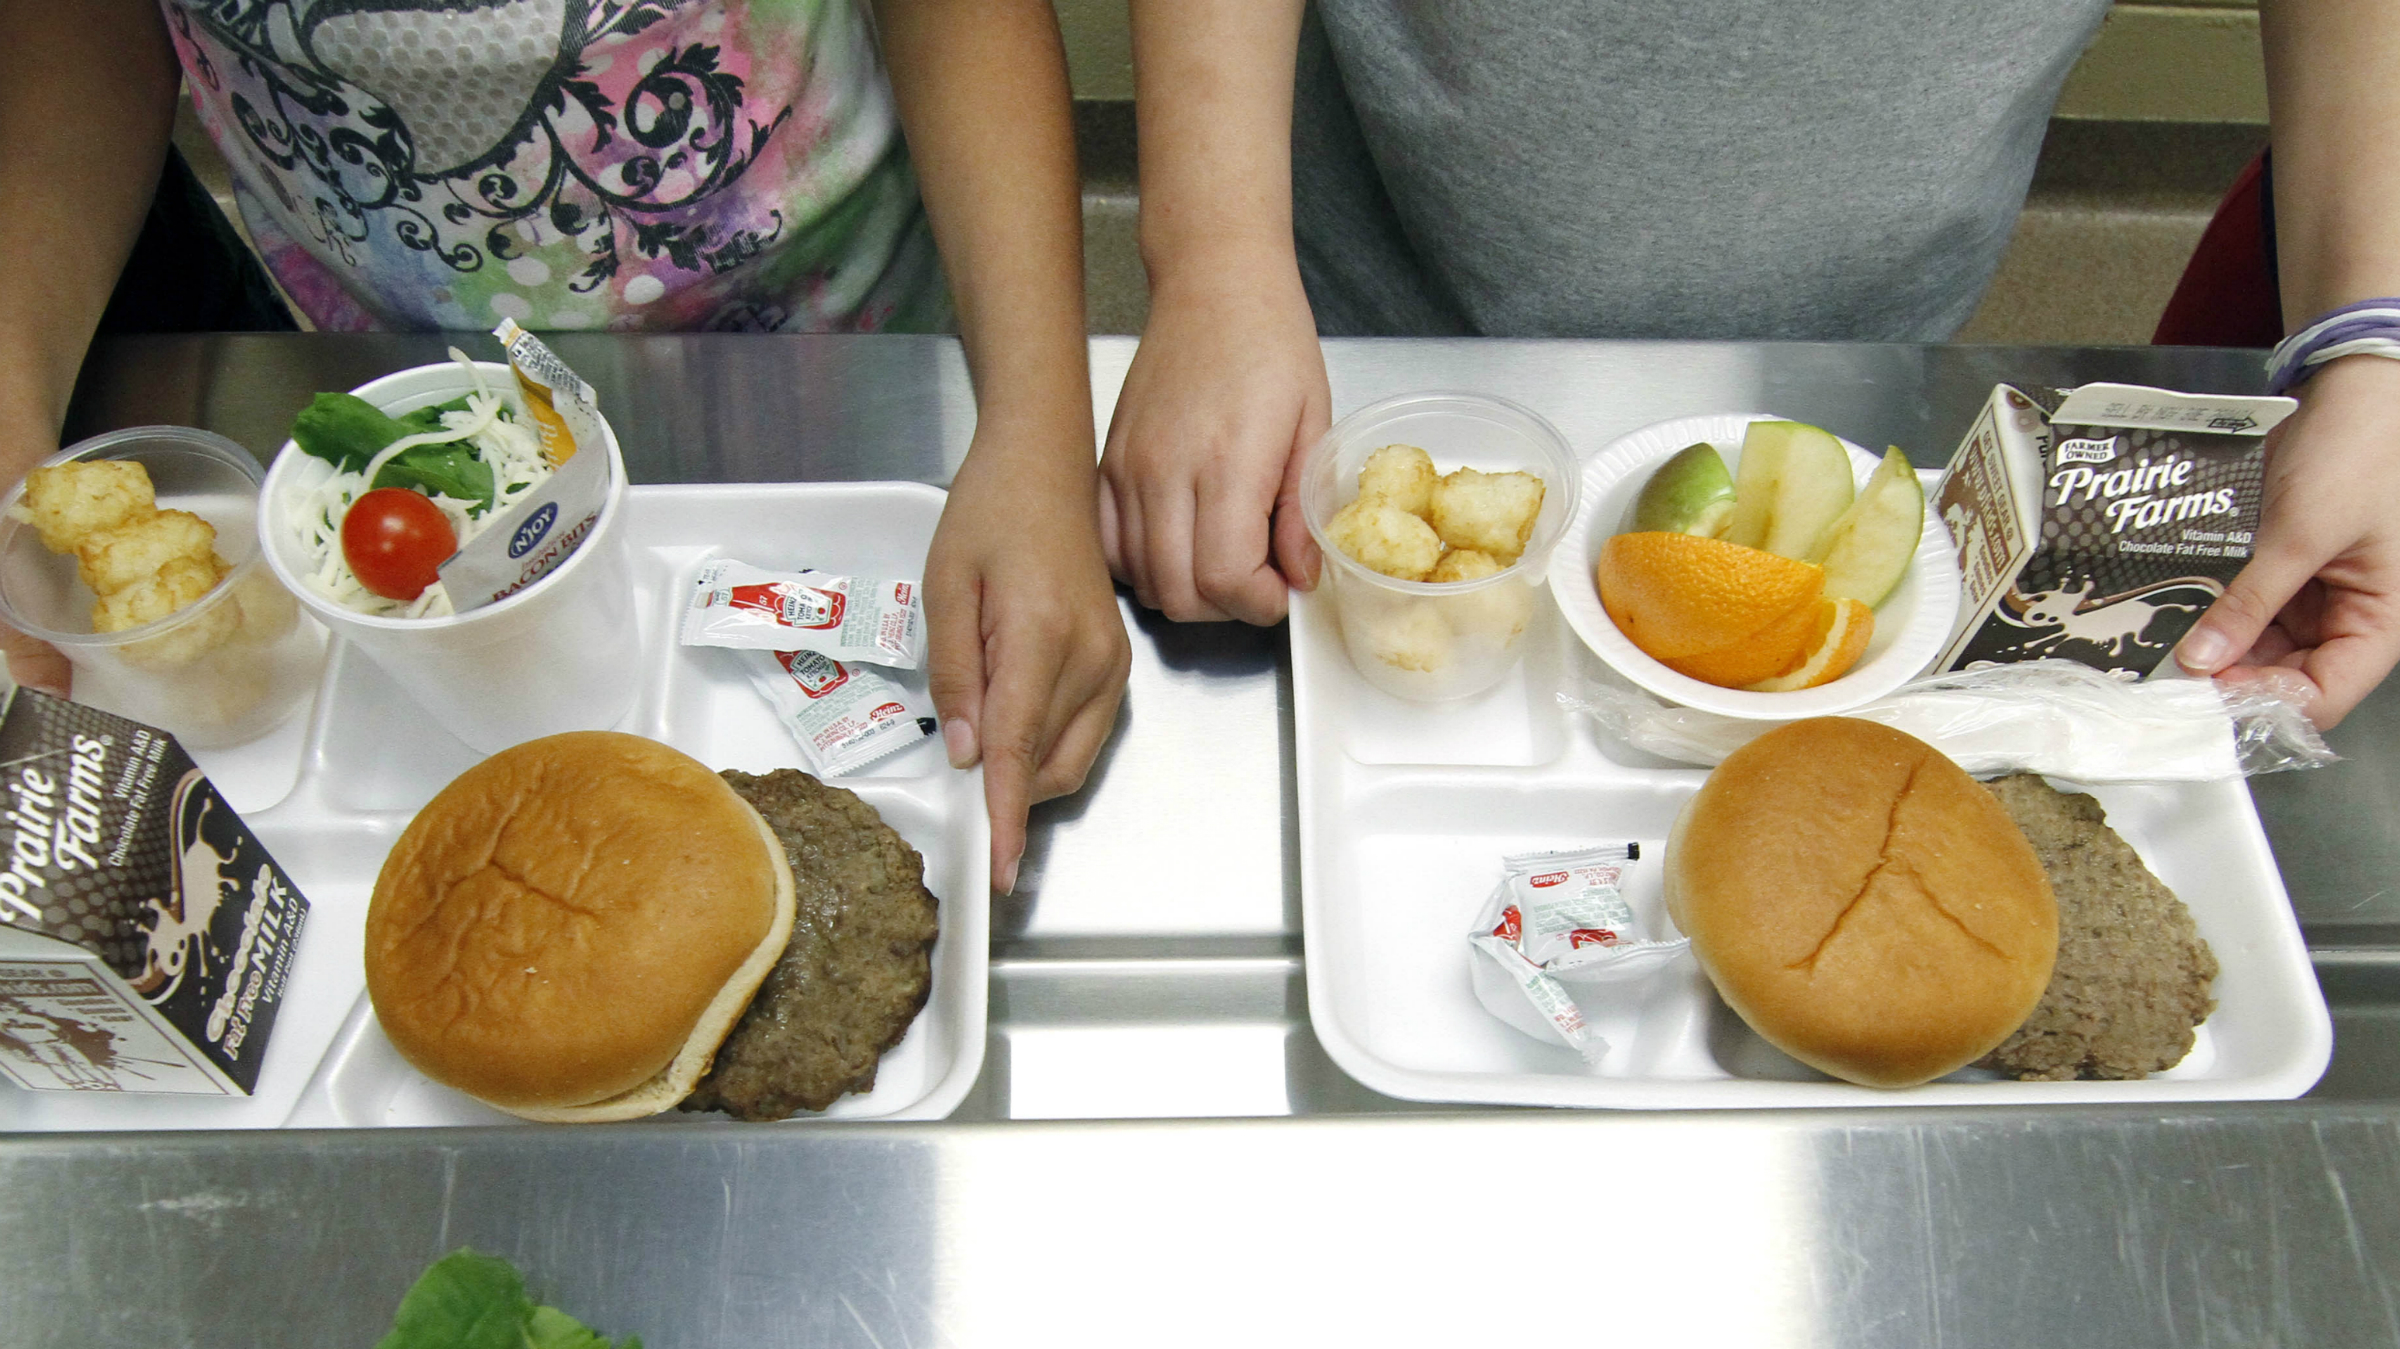 School children are offered a nutritious menu that includes burgers and tater tots